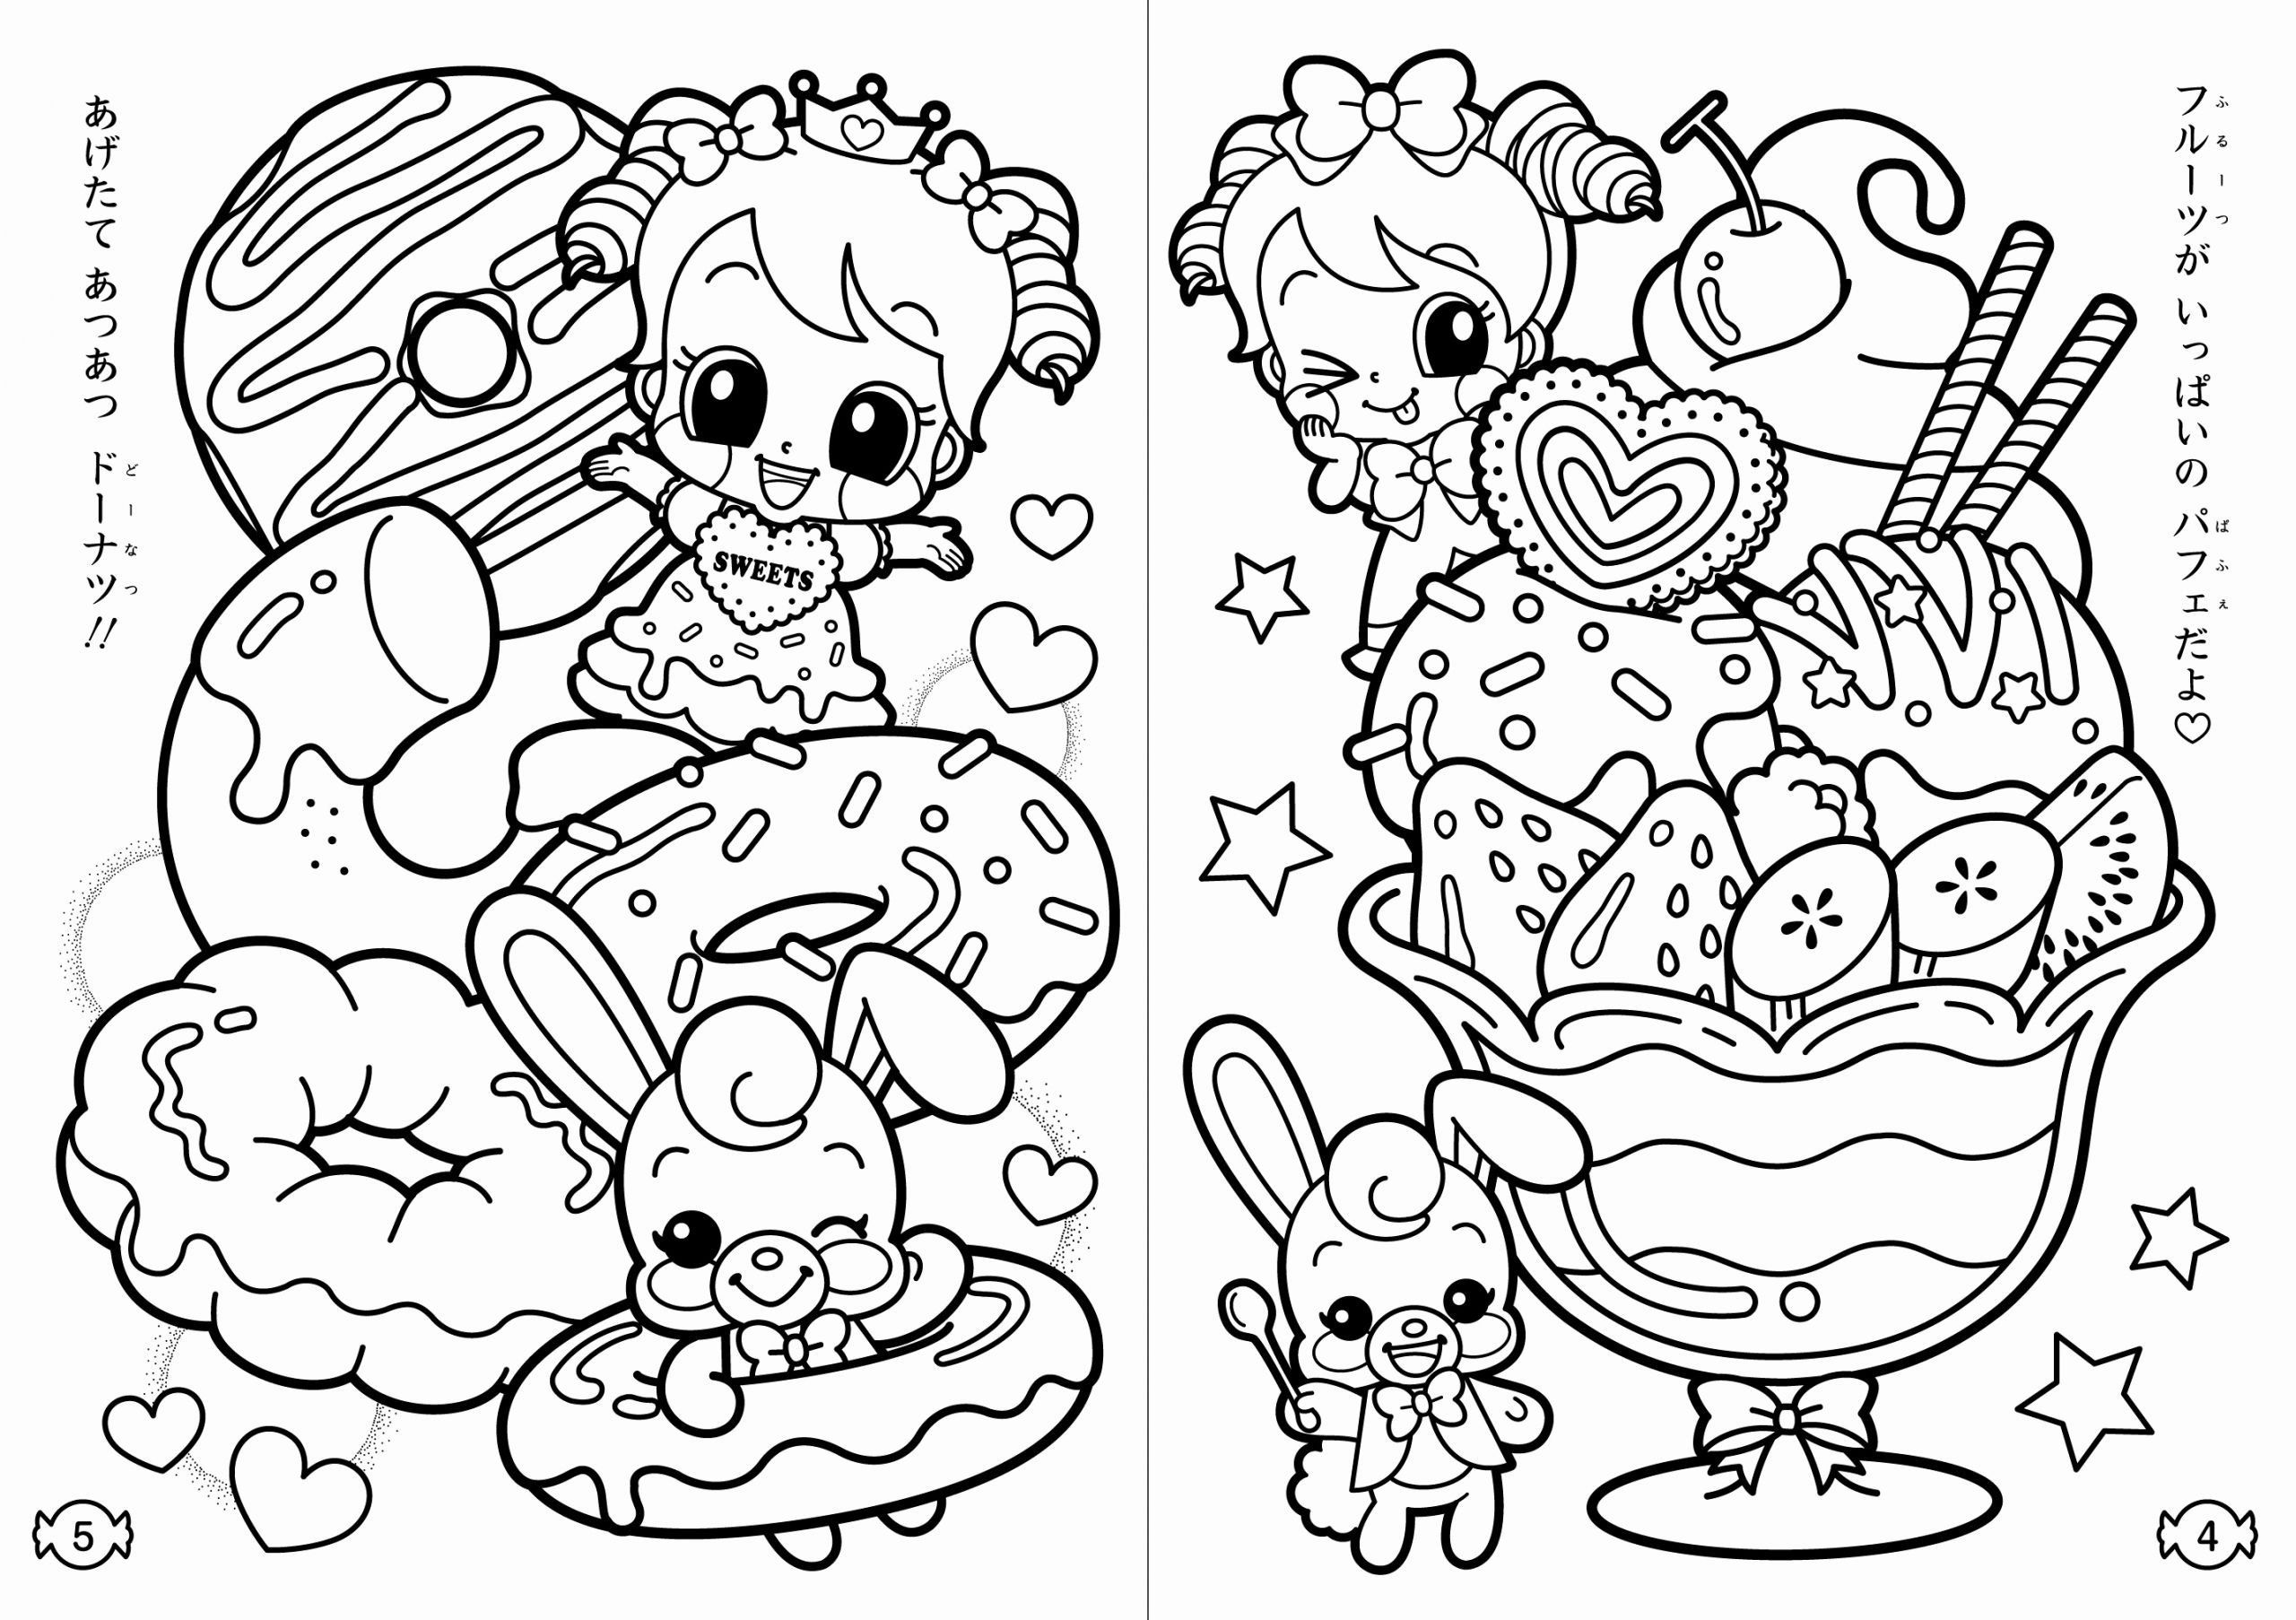 Kawaii Coloring Pages Printable Luxury Cute Kawaii Coloring Pages At Getcolorings In 2020 Unicorn Coloring Pages Disney Coloring Pages Mermaid Coloring Pages